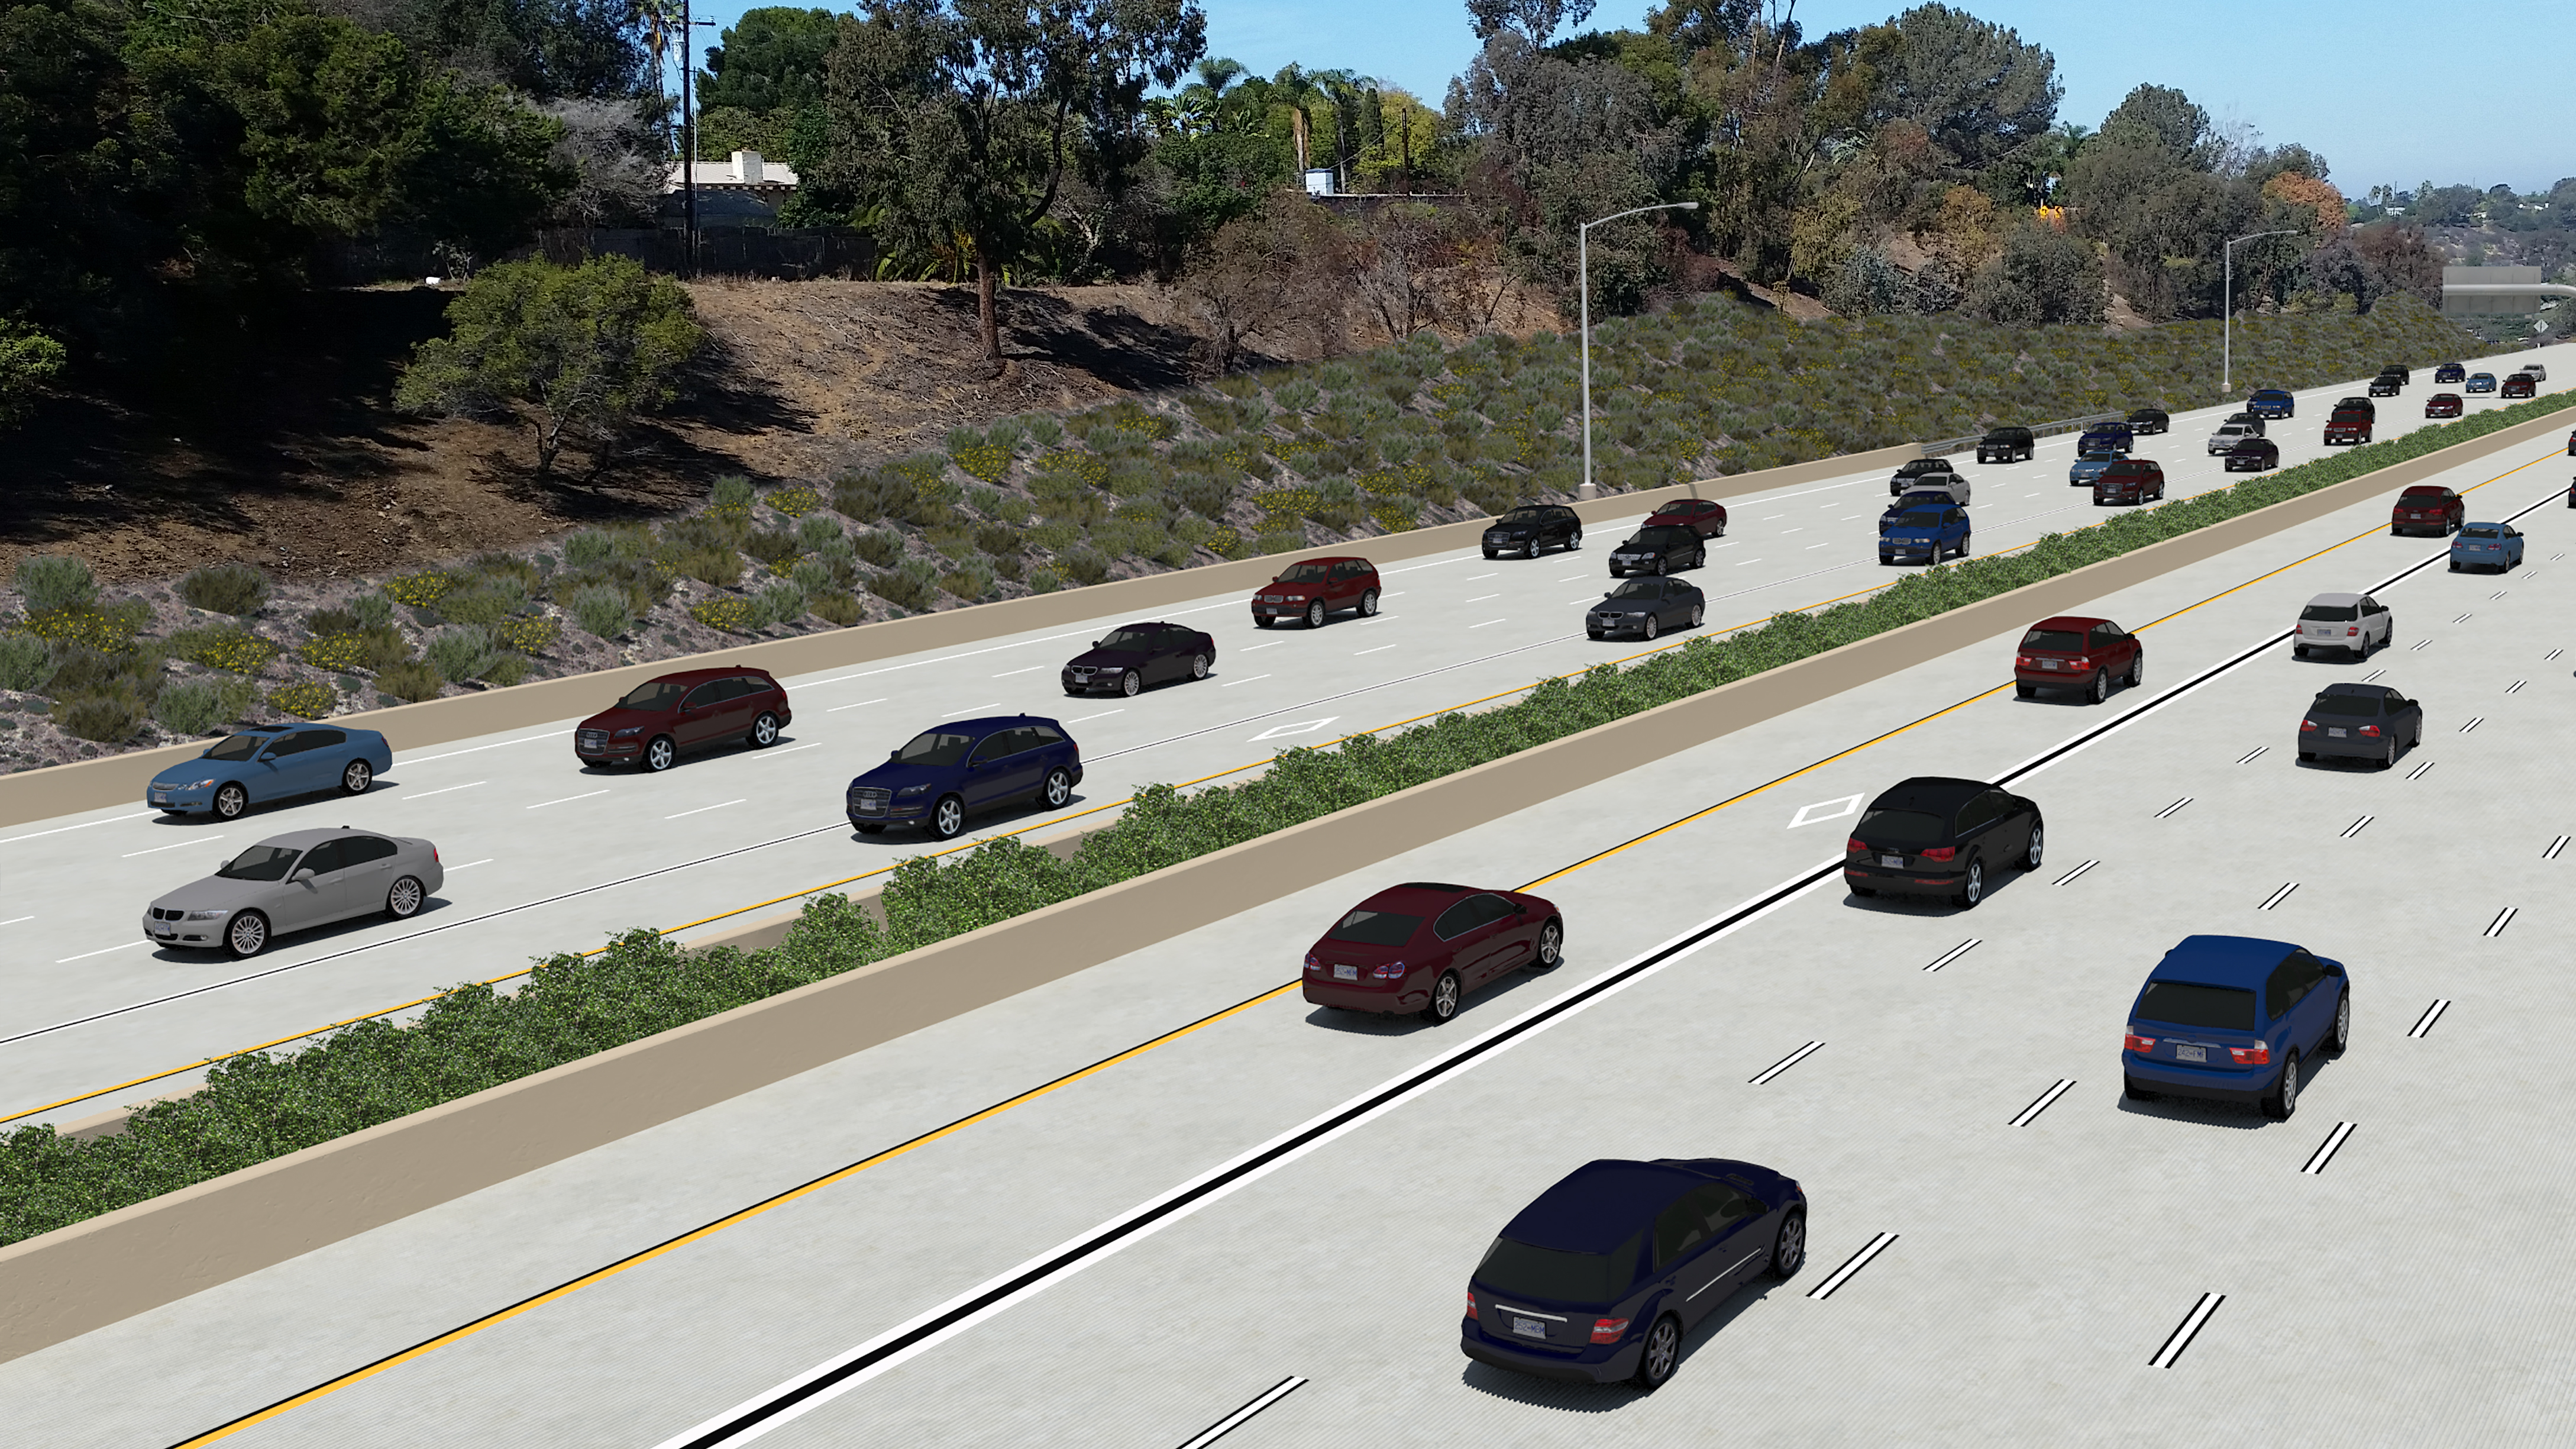 Join SANDAG and Caltrans for an Interstate 5 Construction Update Open House